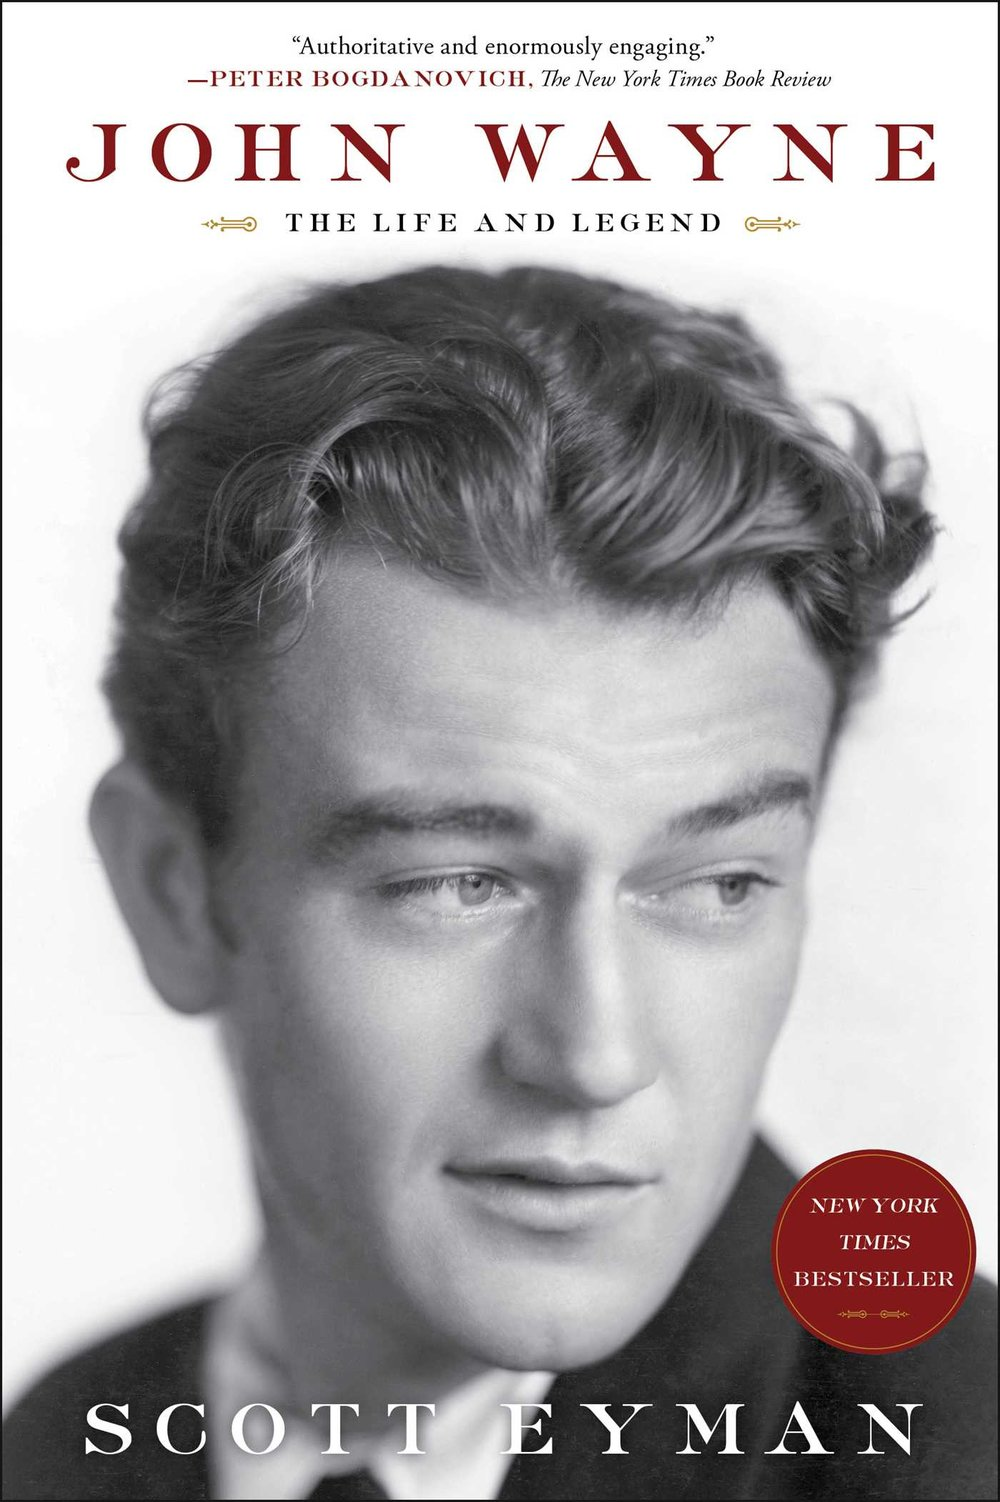 John Wayne: The Life and Legend by Scott Eyman